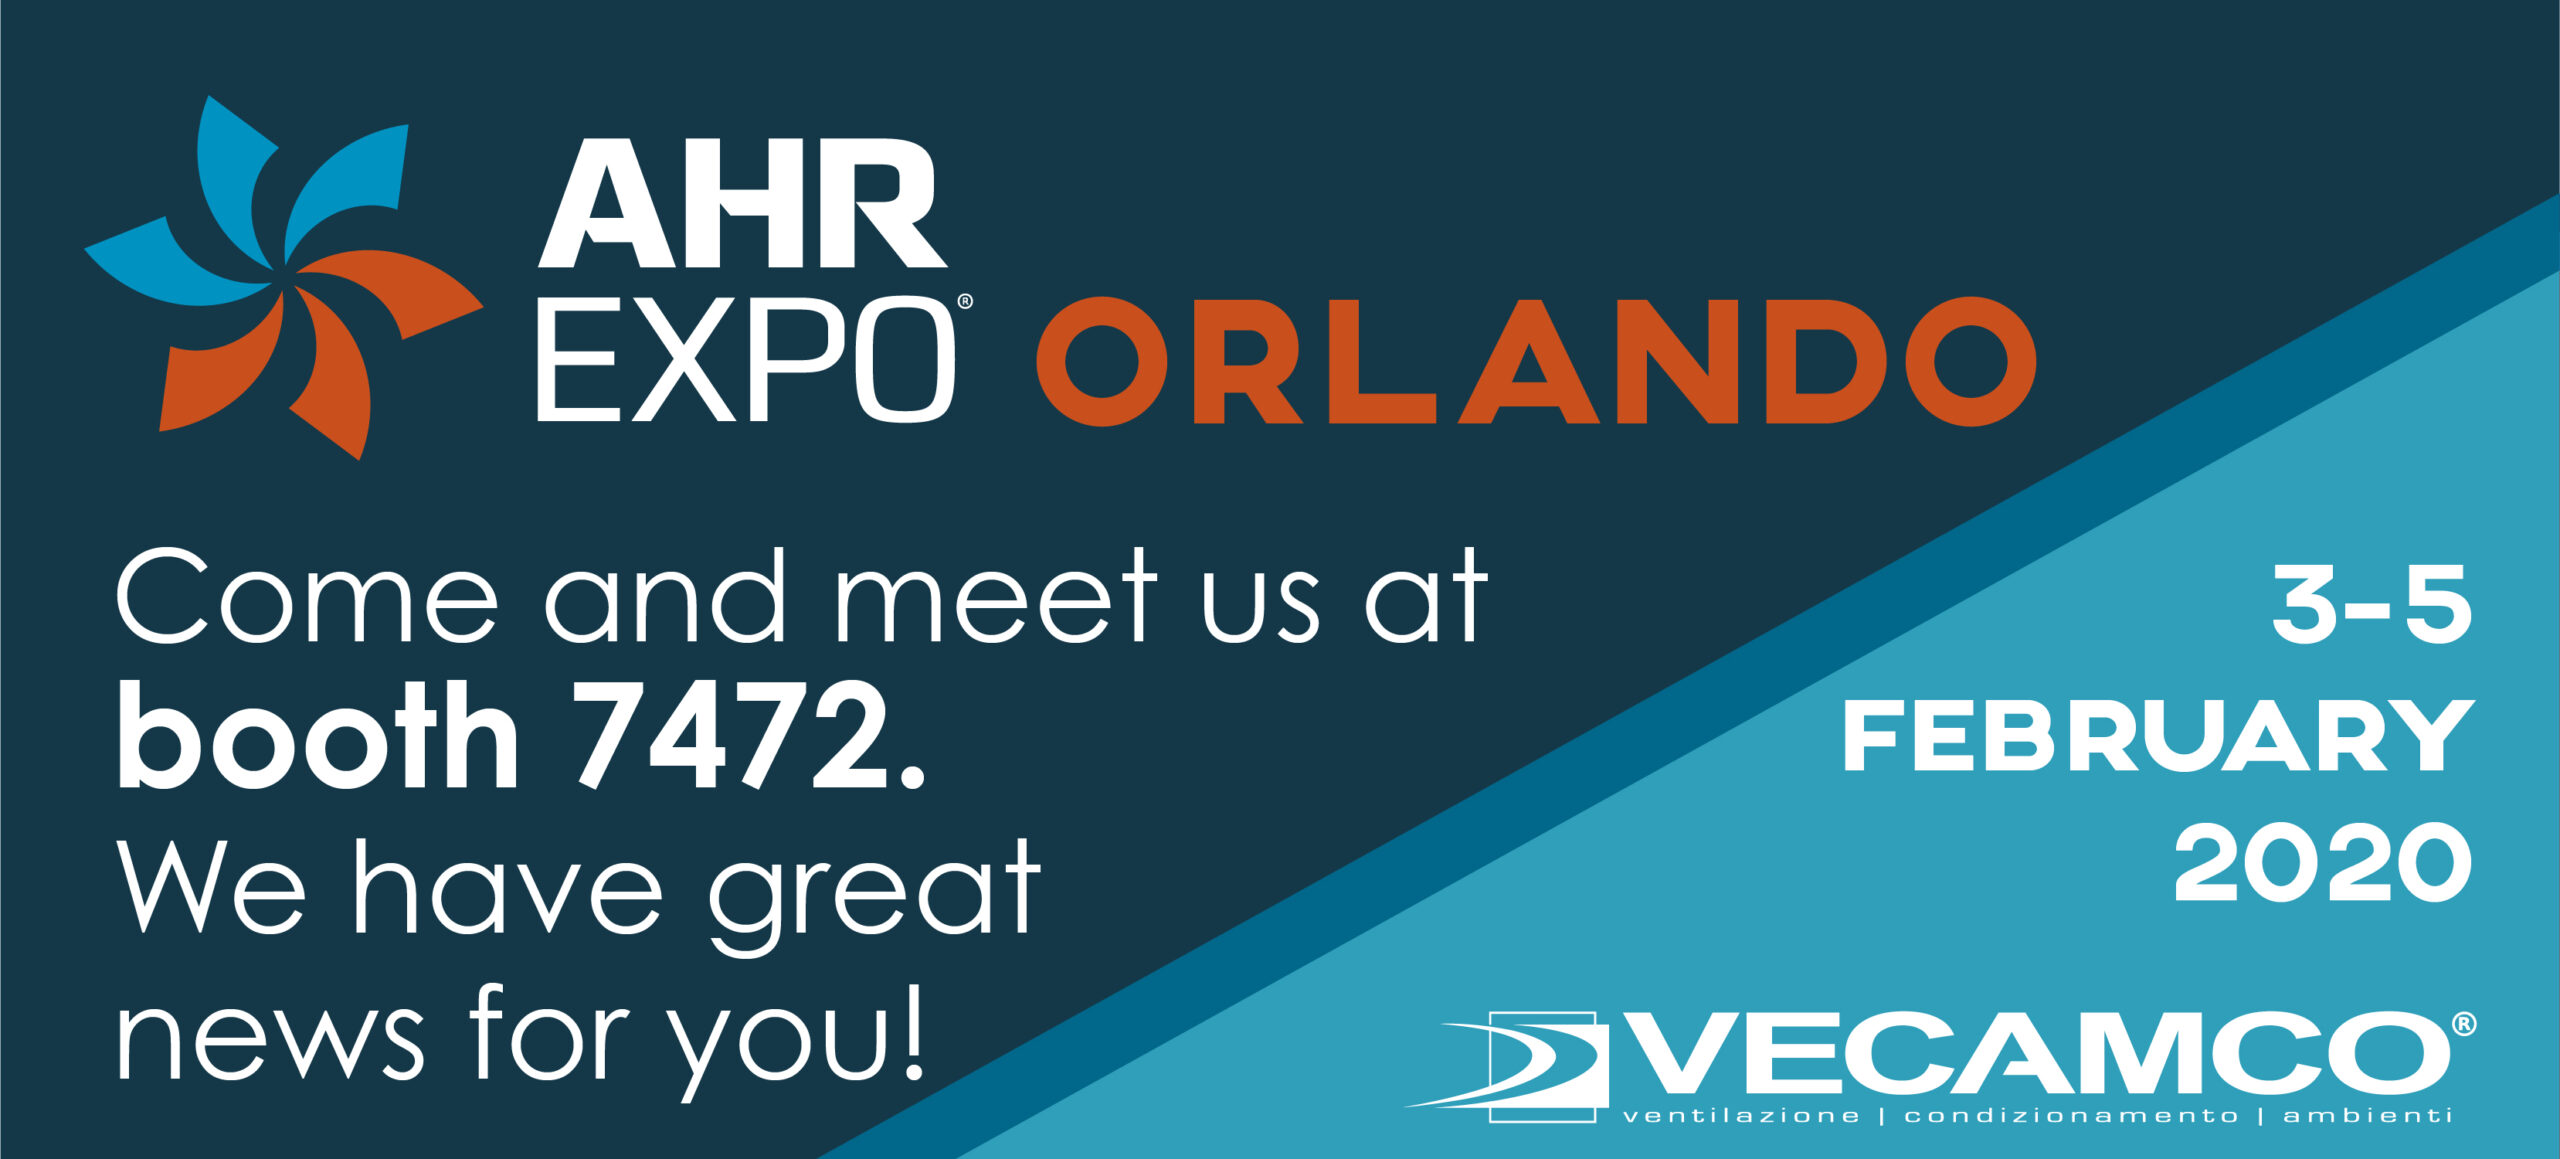 VECAMCO WAS PRESENT AT THE 2020 EDITION OF THE AHR EXPO FAIR IN ORLANDO, US